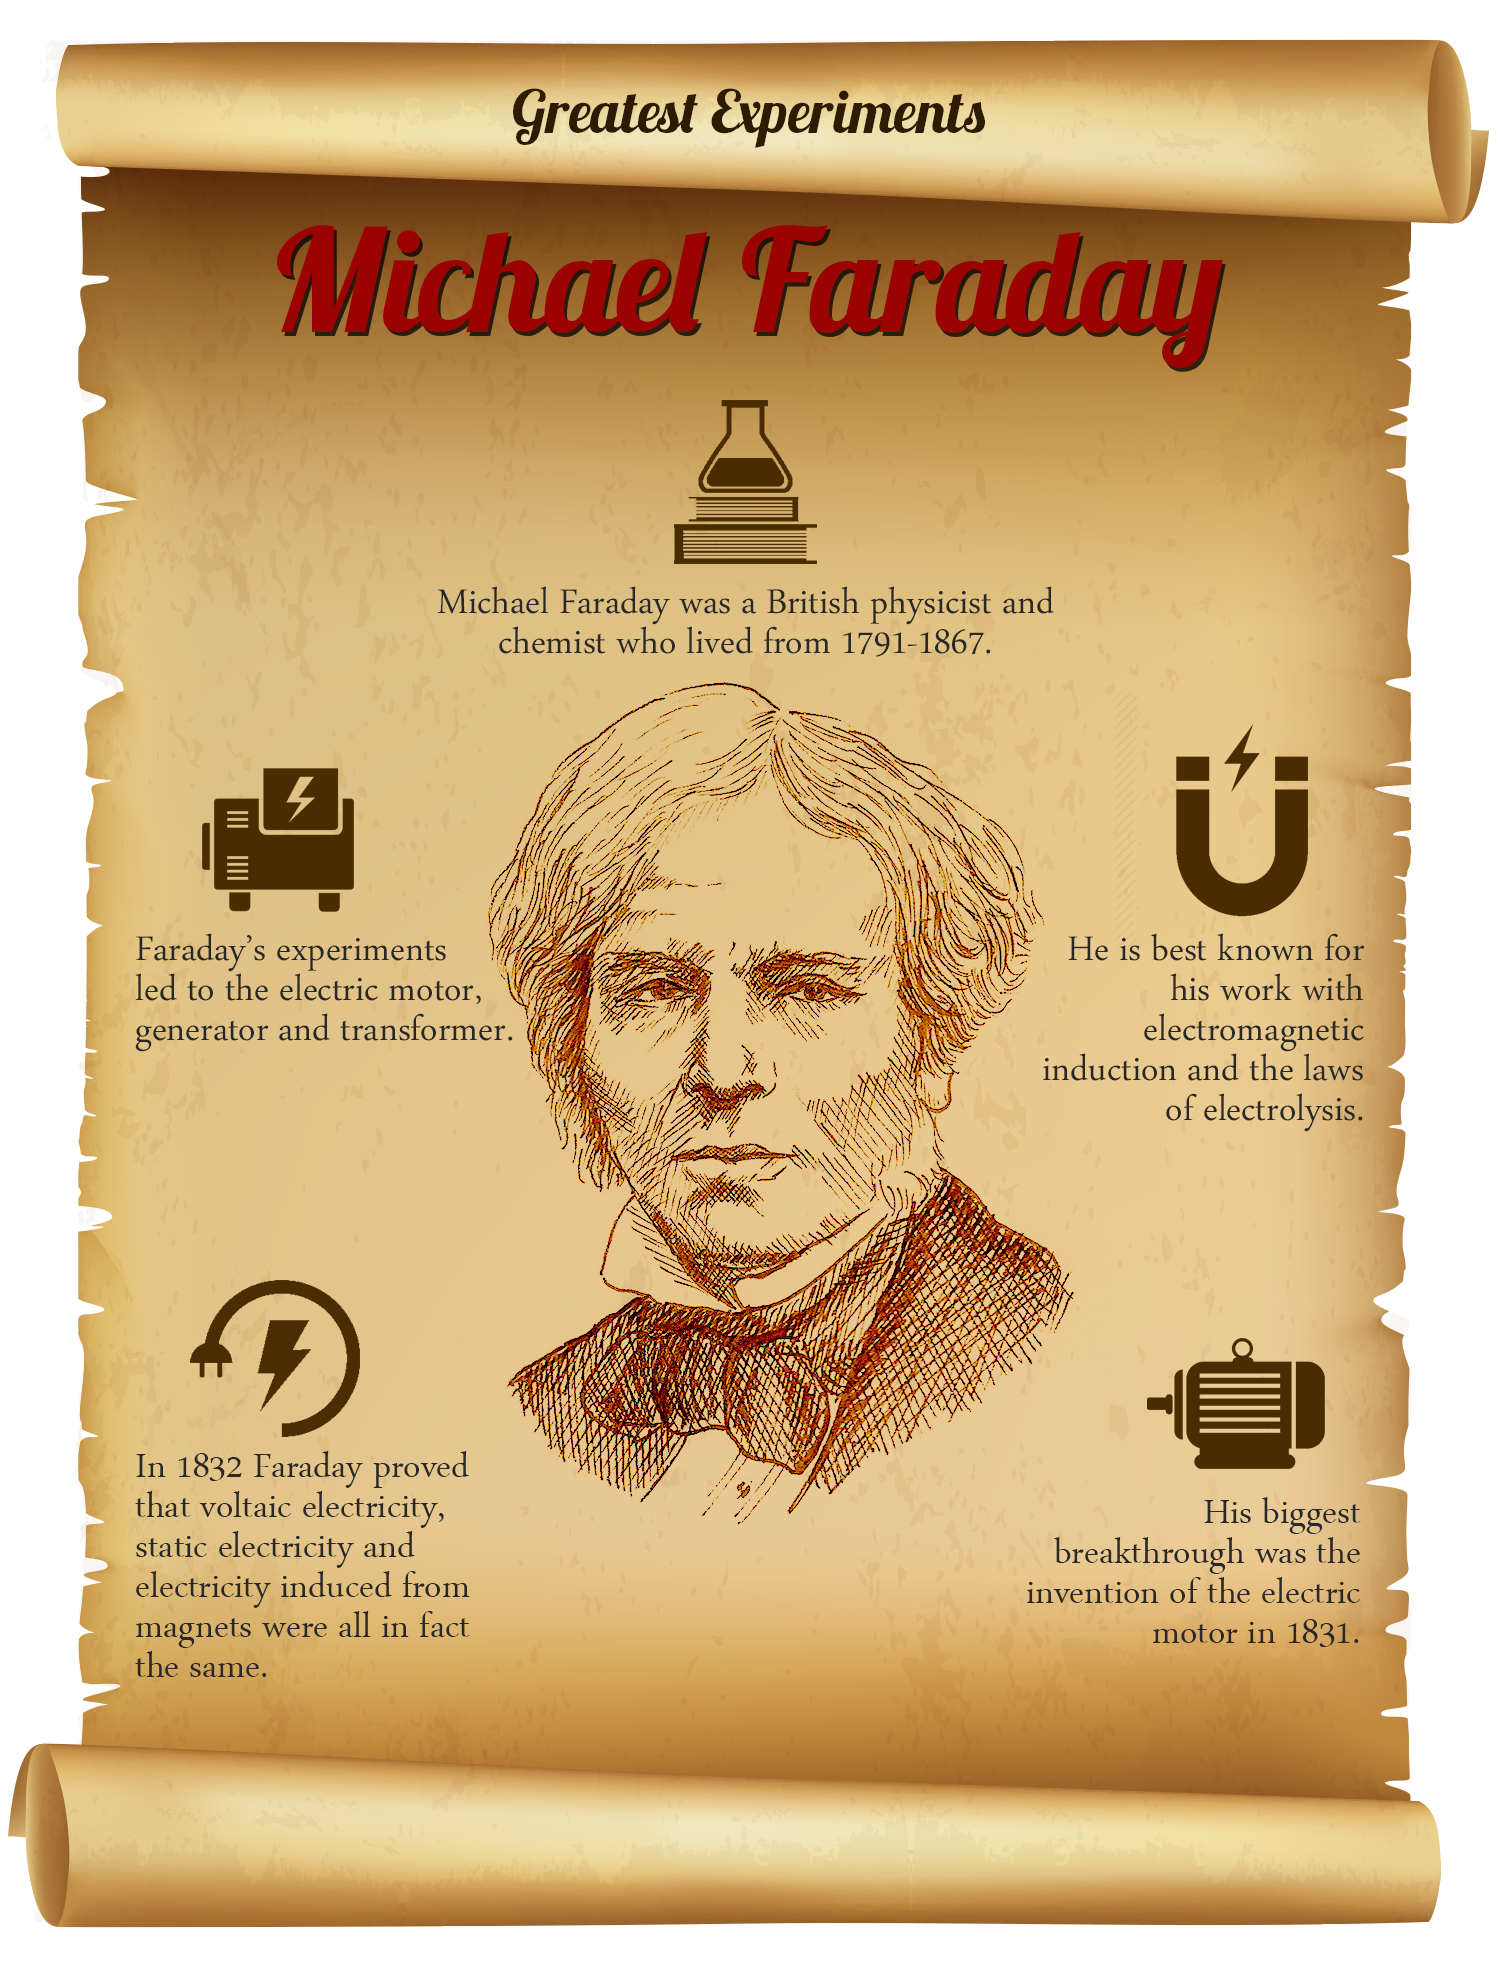 Greatest experiments michael faraday 39 s experiments led for Michael faraday electric motor